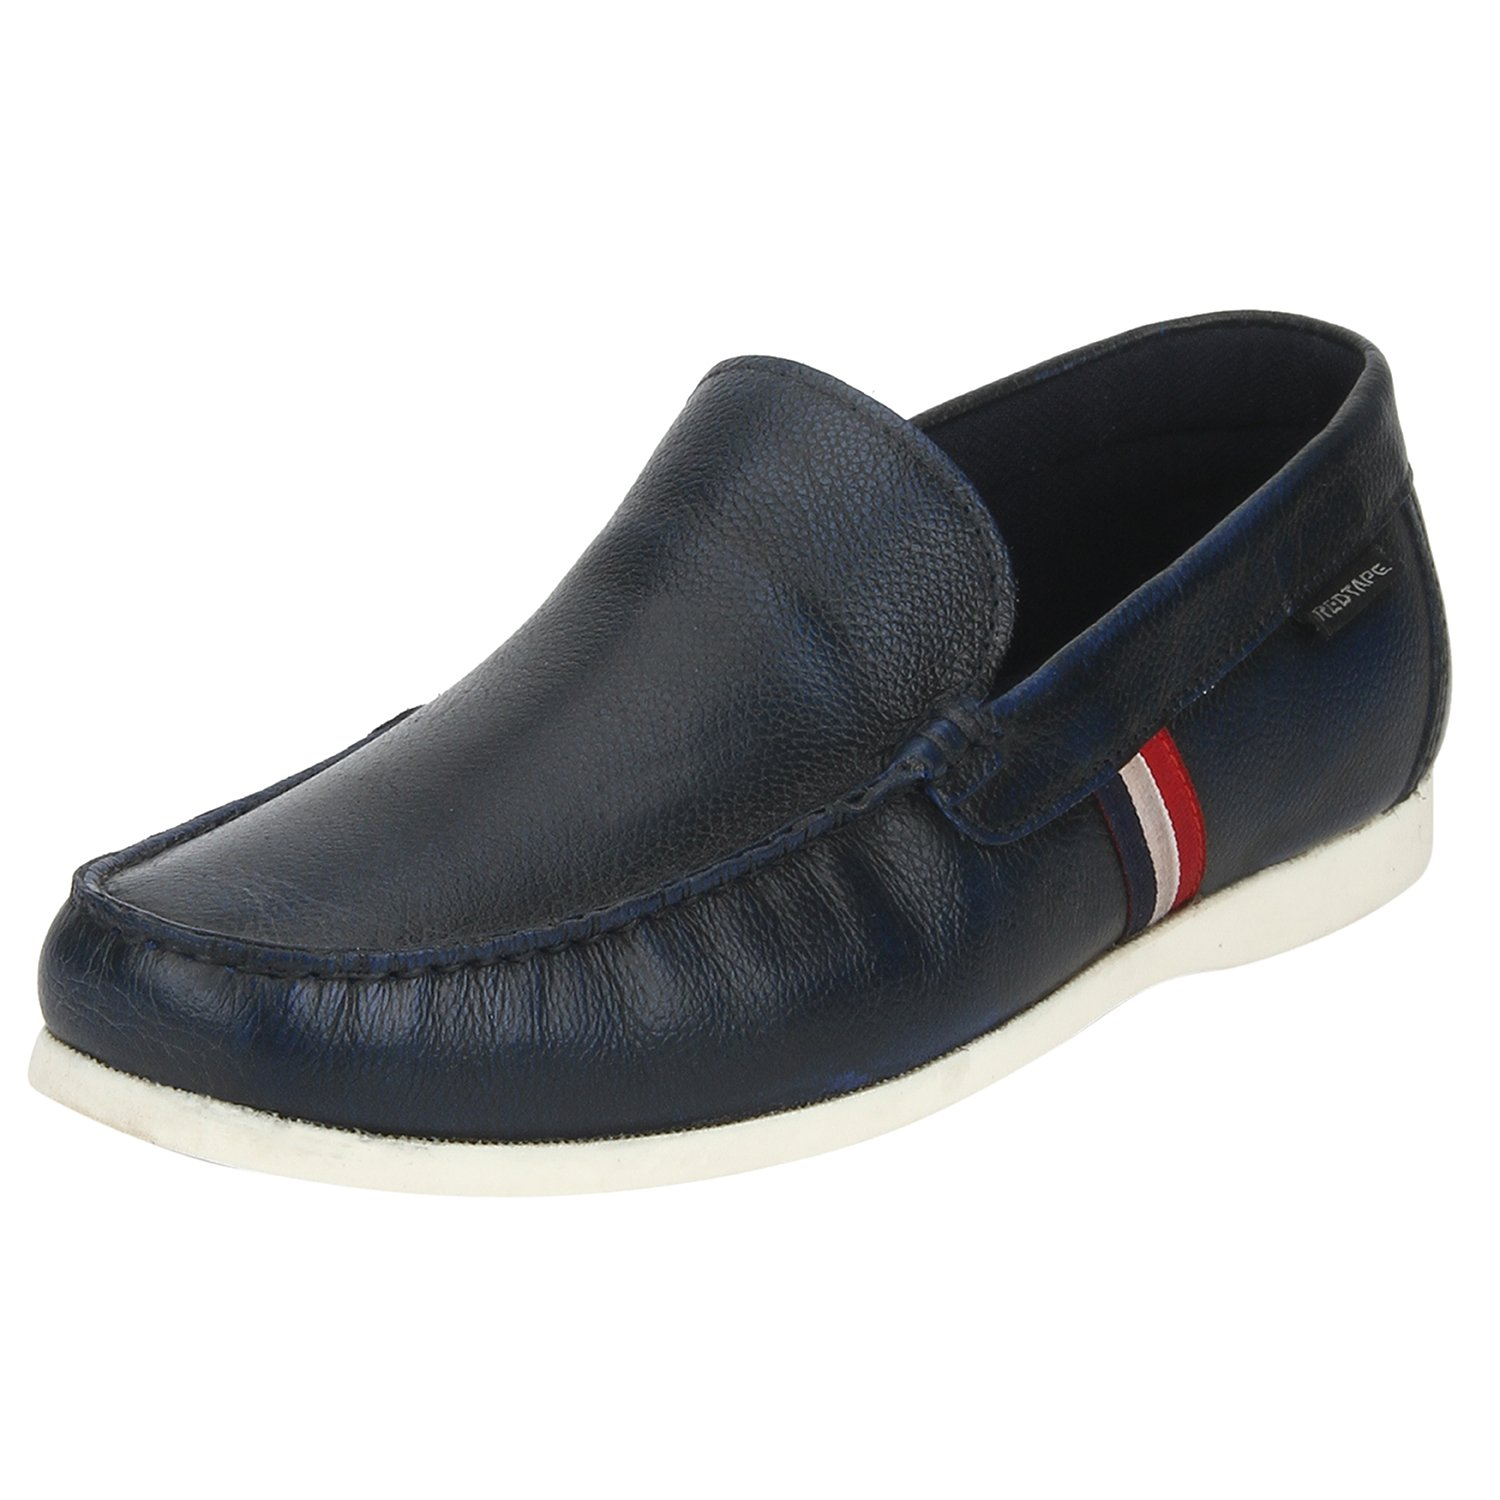 new product d21ce 7d753 Red Tape Mens Boat Shoes